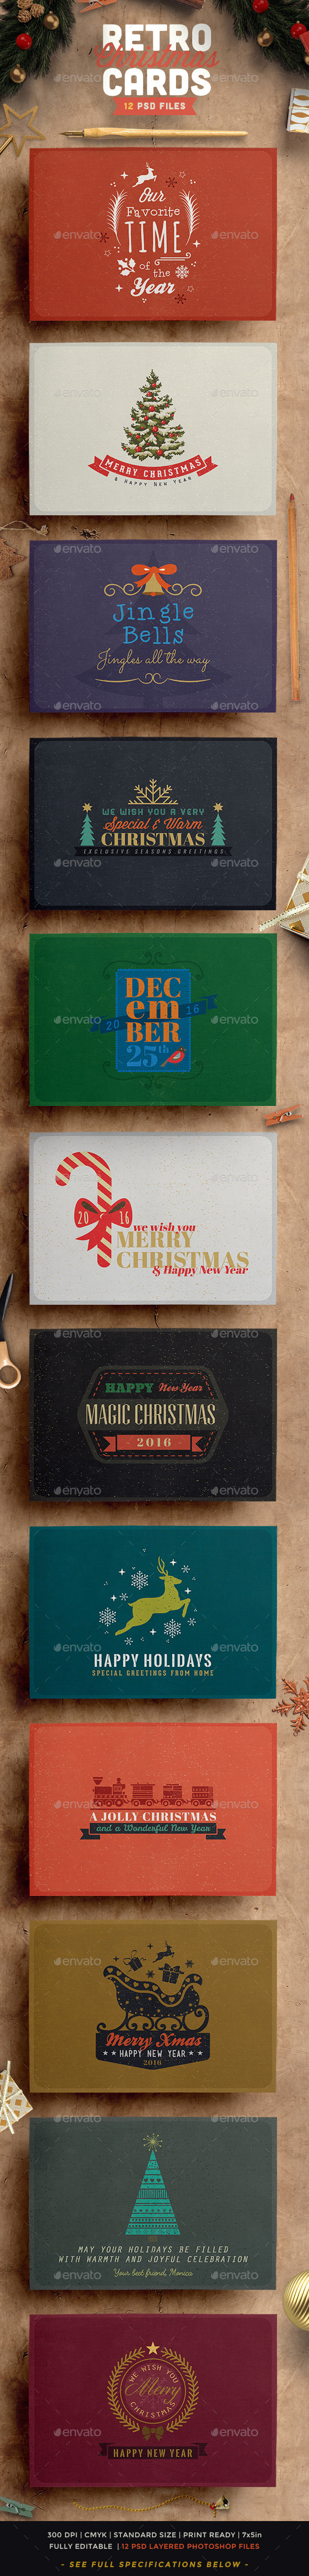 Retro Vintage Christmas Card Pack - Holiday Greeting Cards